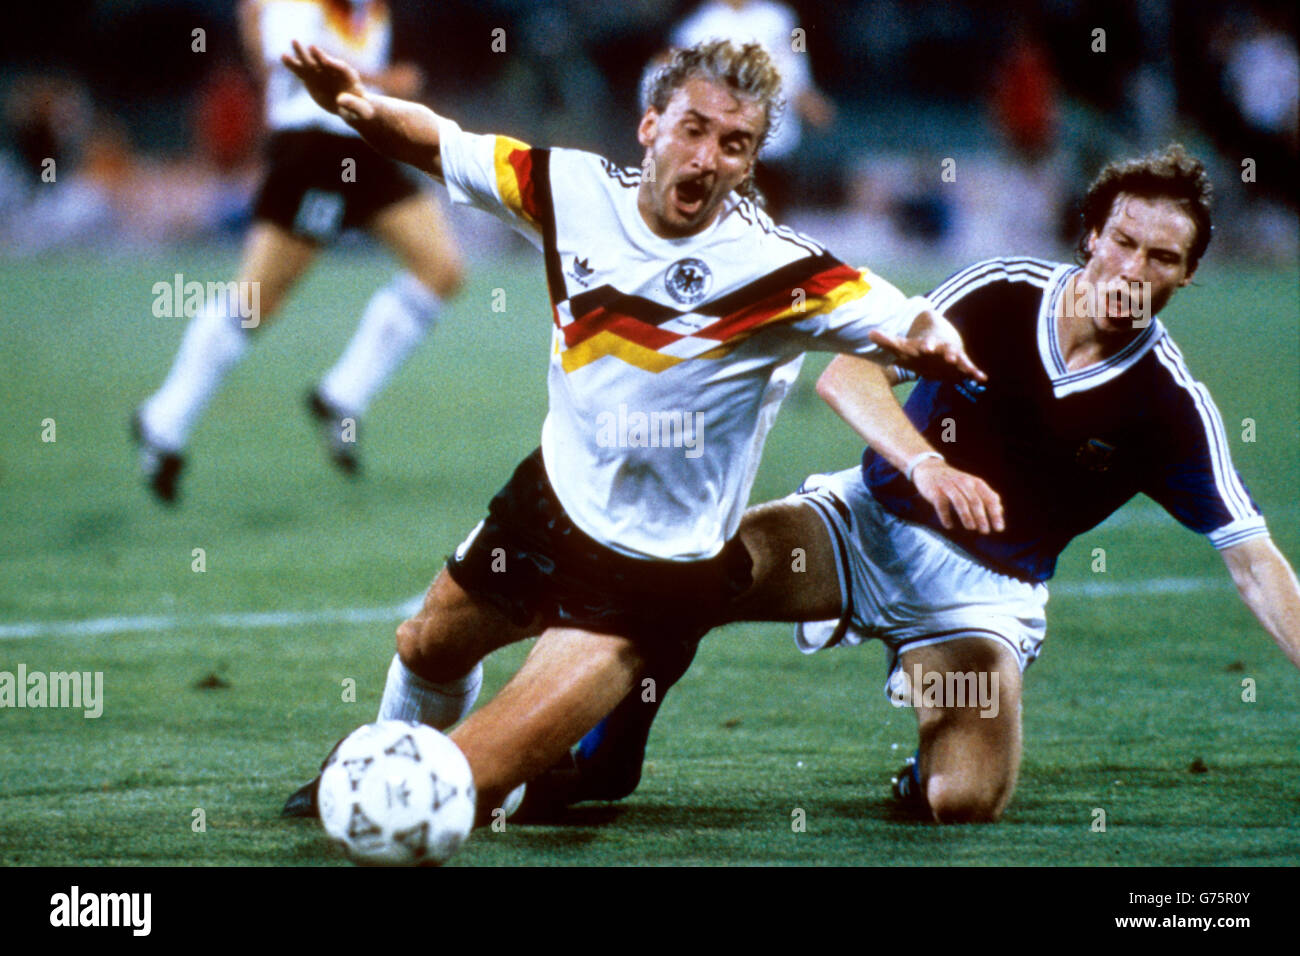 a45406720 Soccer - 1990 FIFA World Cup - Final - West Germany v Argentina - Stadio  Olimpico, Rome